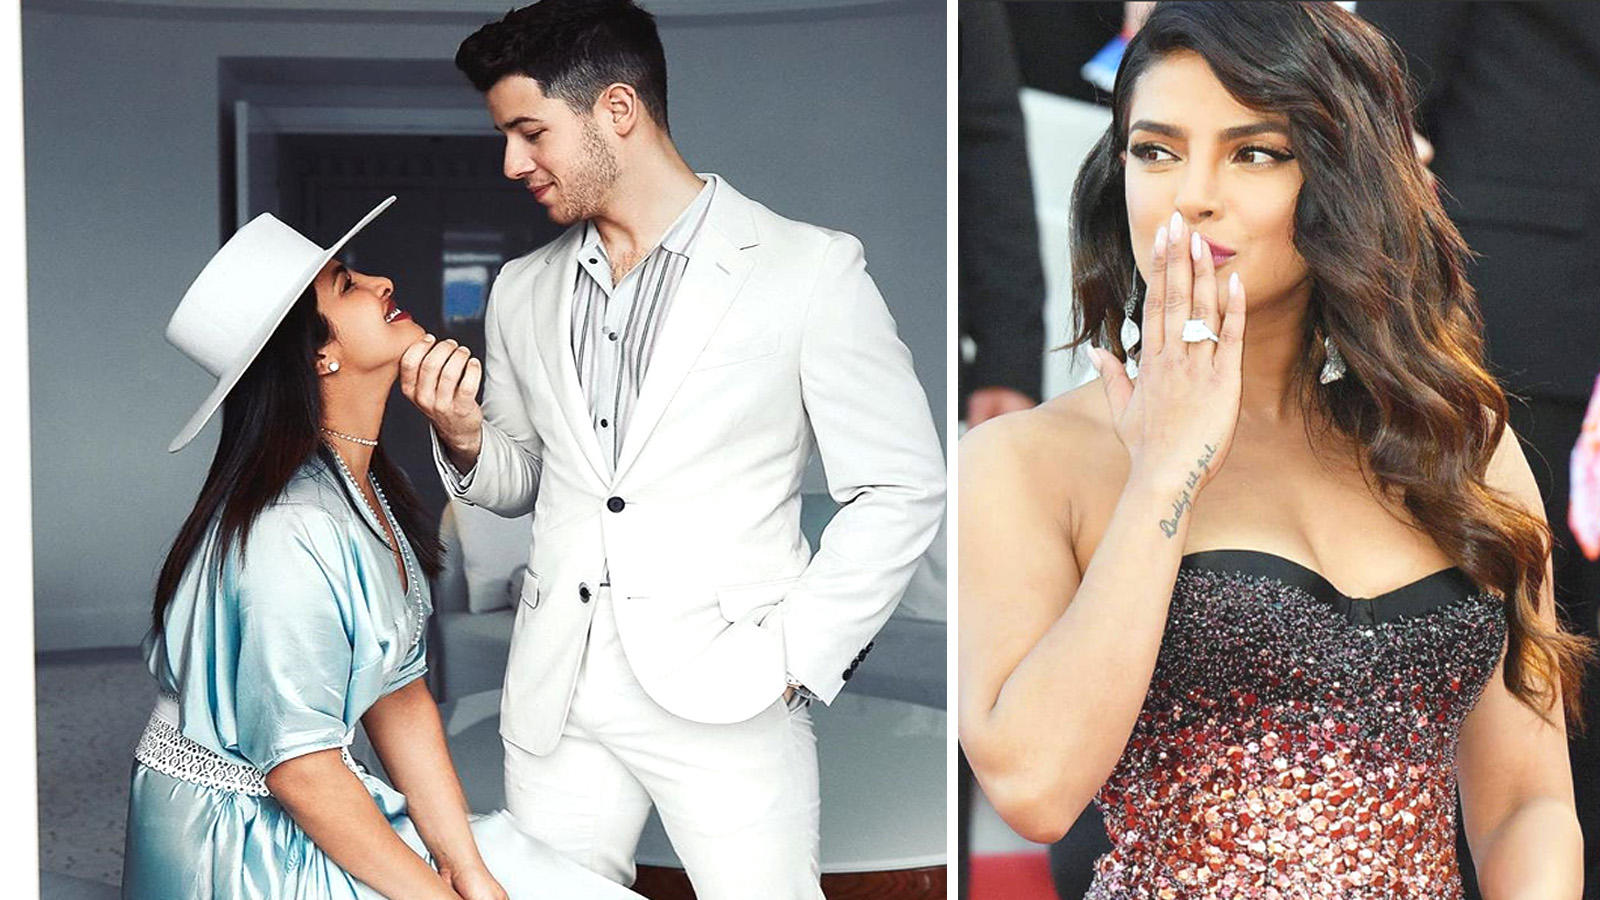 Cannes 2019: Priyanka Chopra and Nick Jonas walk hand-in-hand at French Riviera